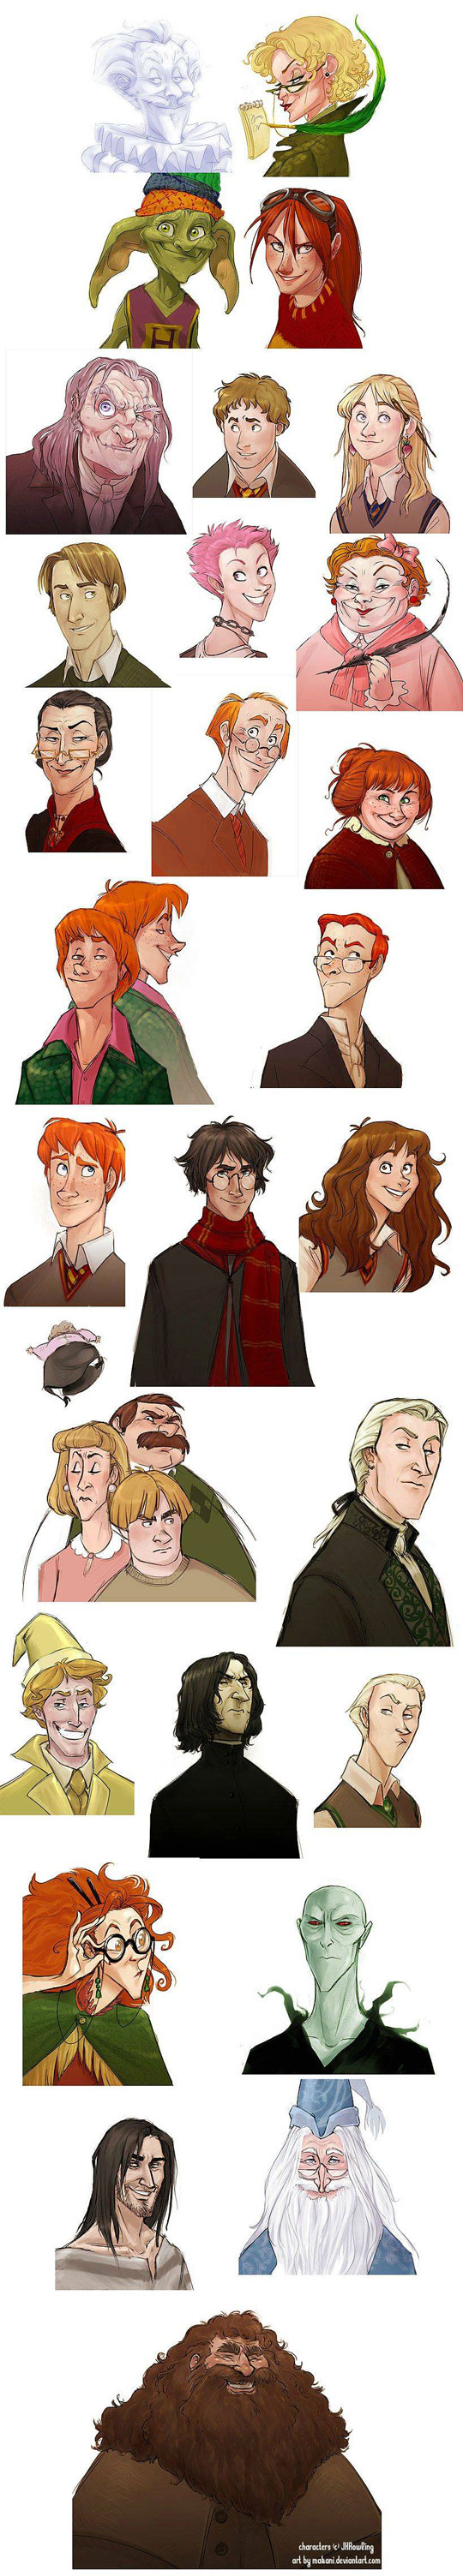 Harry Potter Character Design Challenge Facebook : Harry potter characters get a disney animated makeover